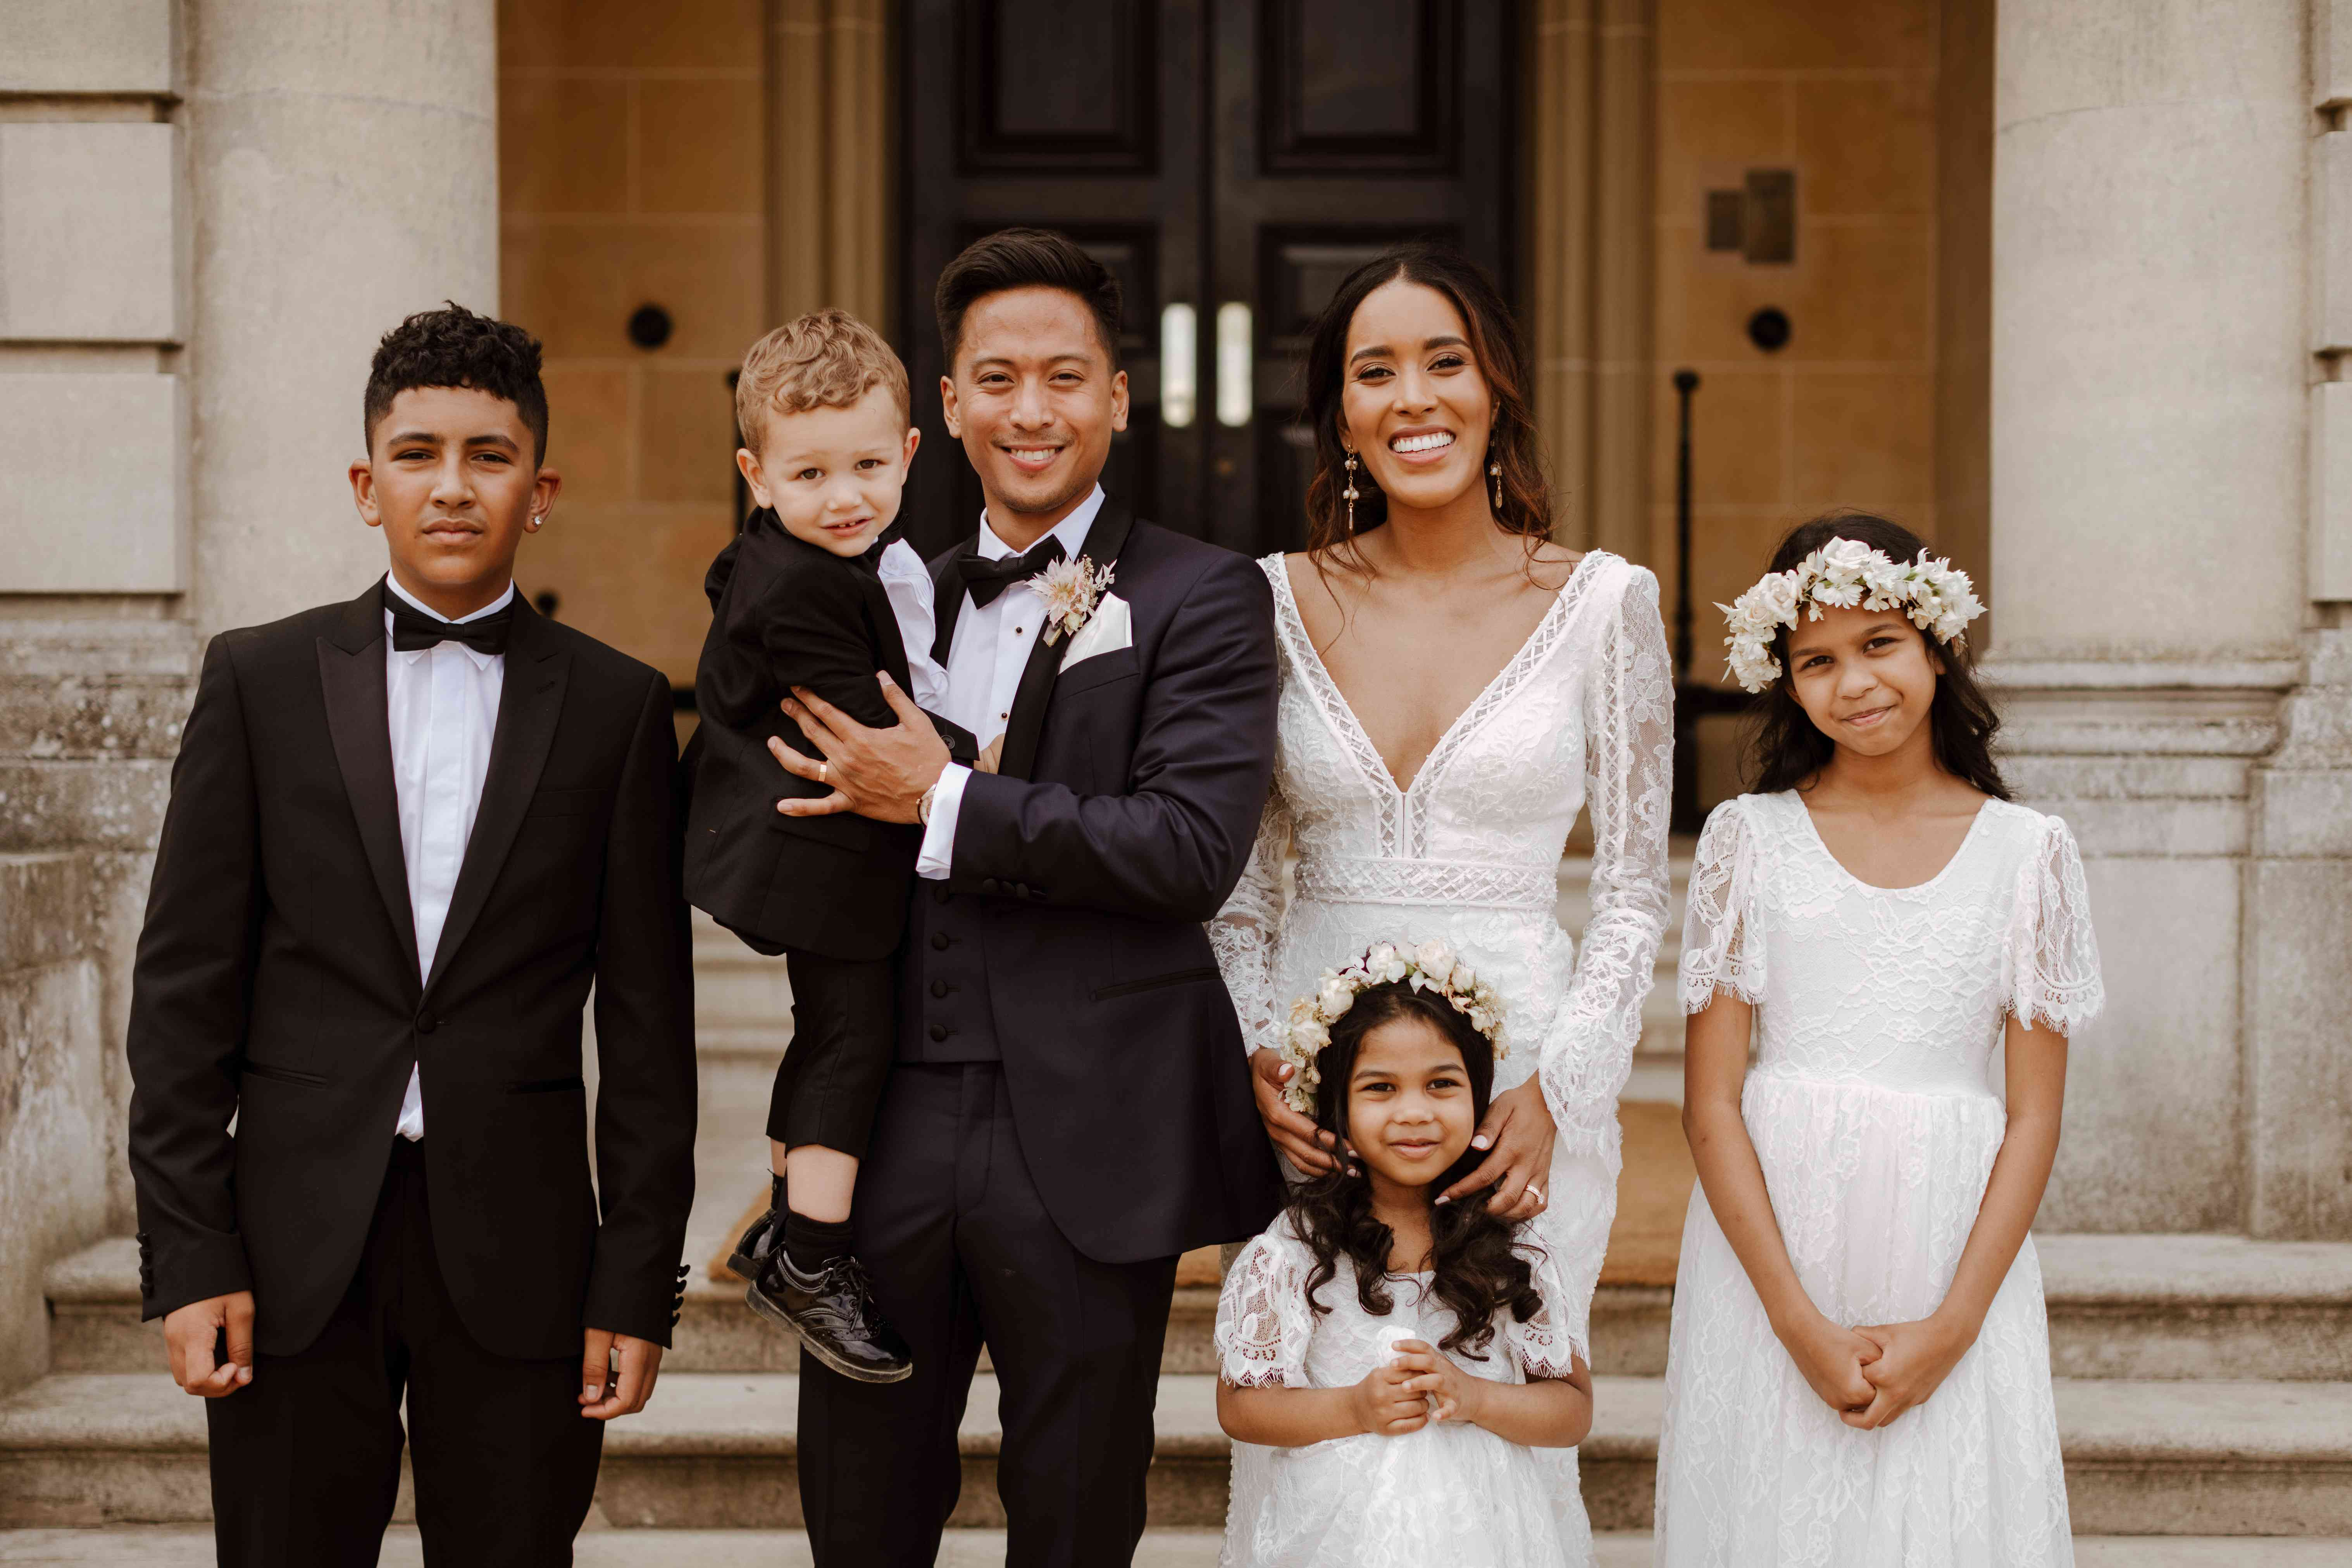 The ring bearers and flower girls